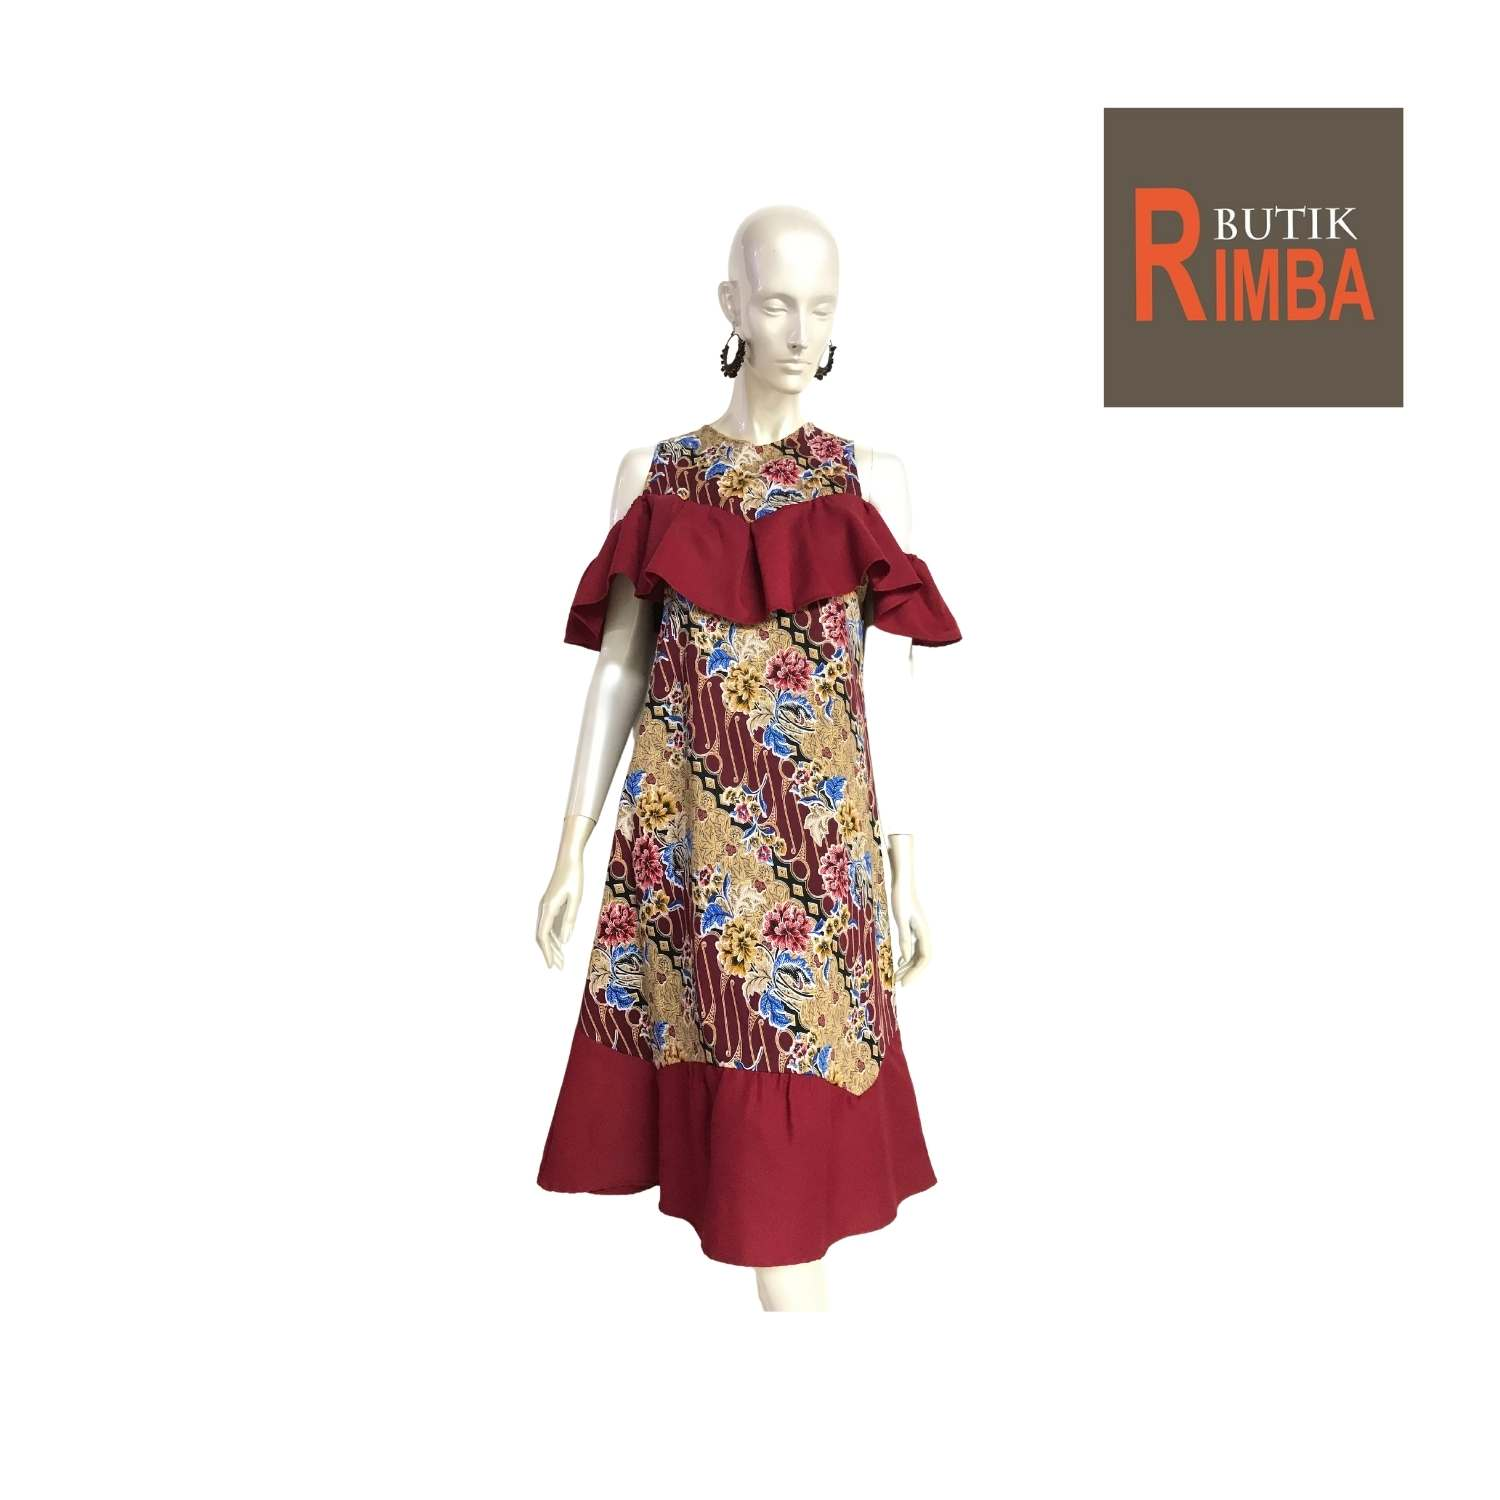 MODERN DRESS BATIK COTTON STRETCHABLE KNEE LENGTH FREE SIZE FOR FASHIONABLE WOMEN IN MIND 13